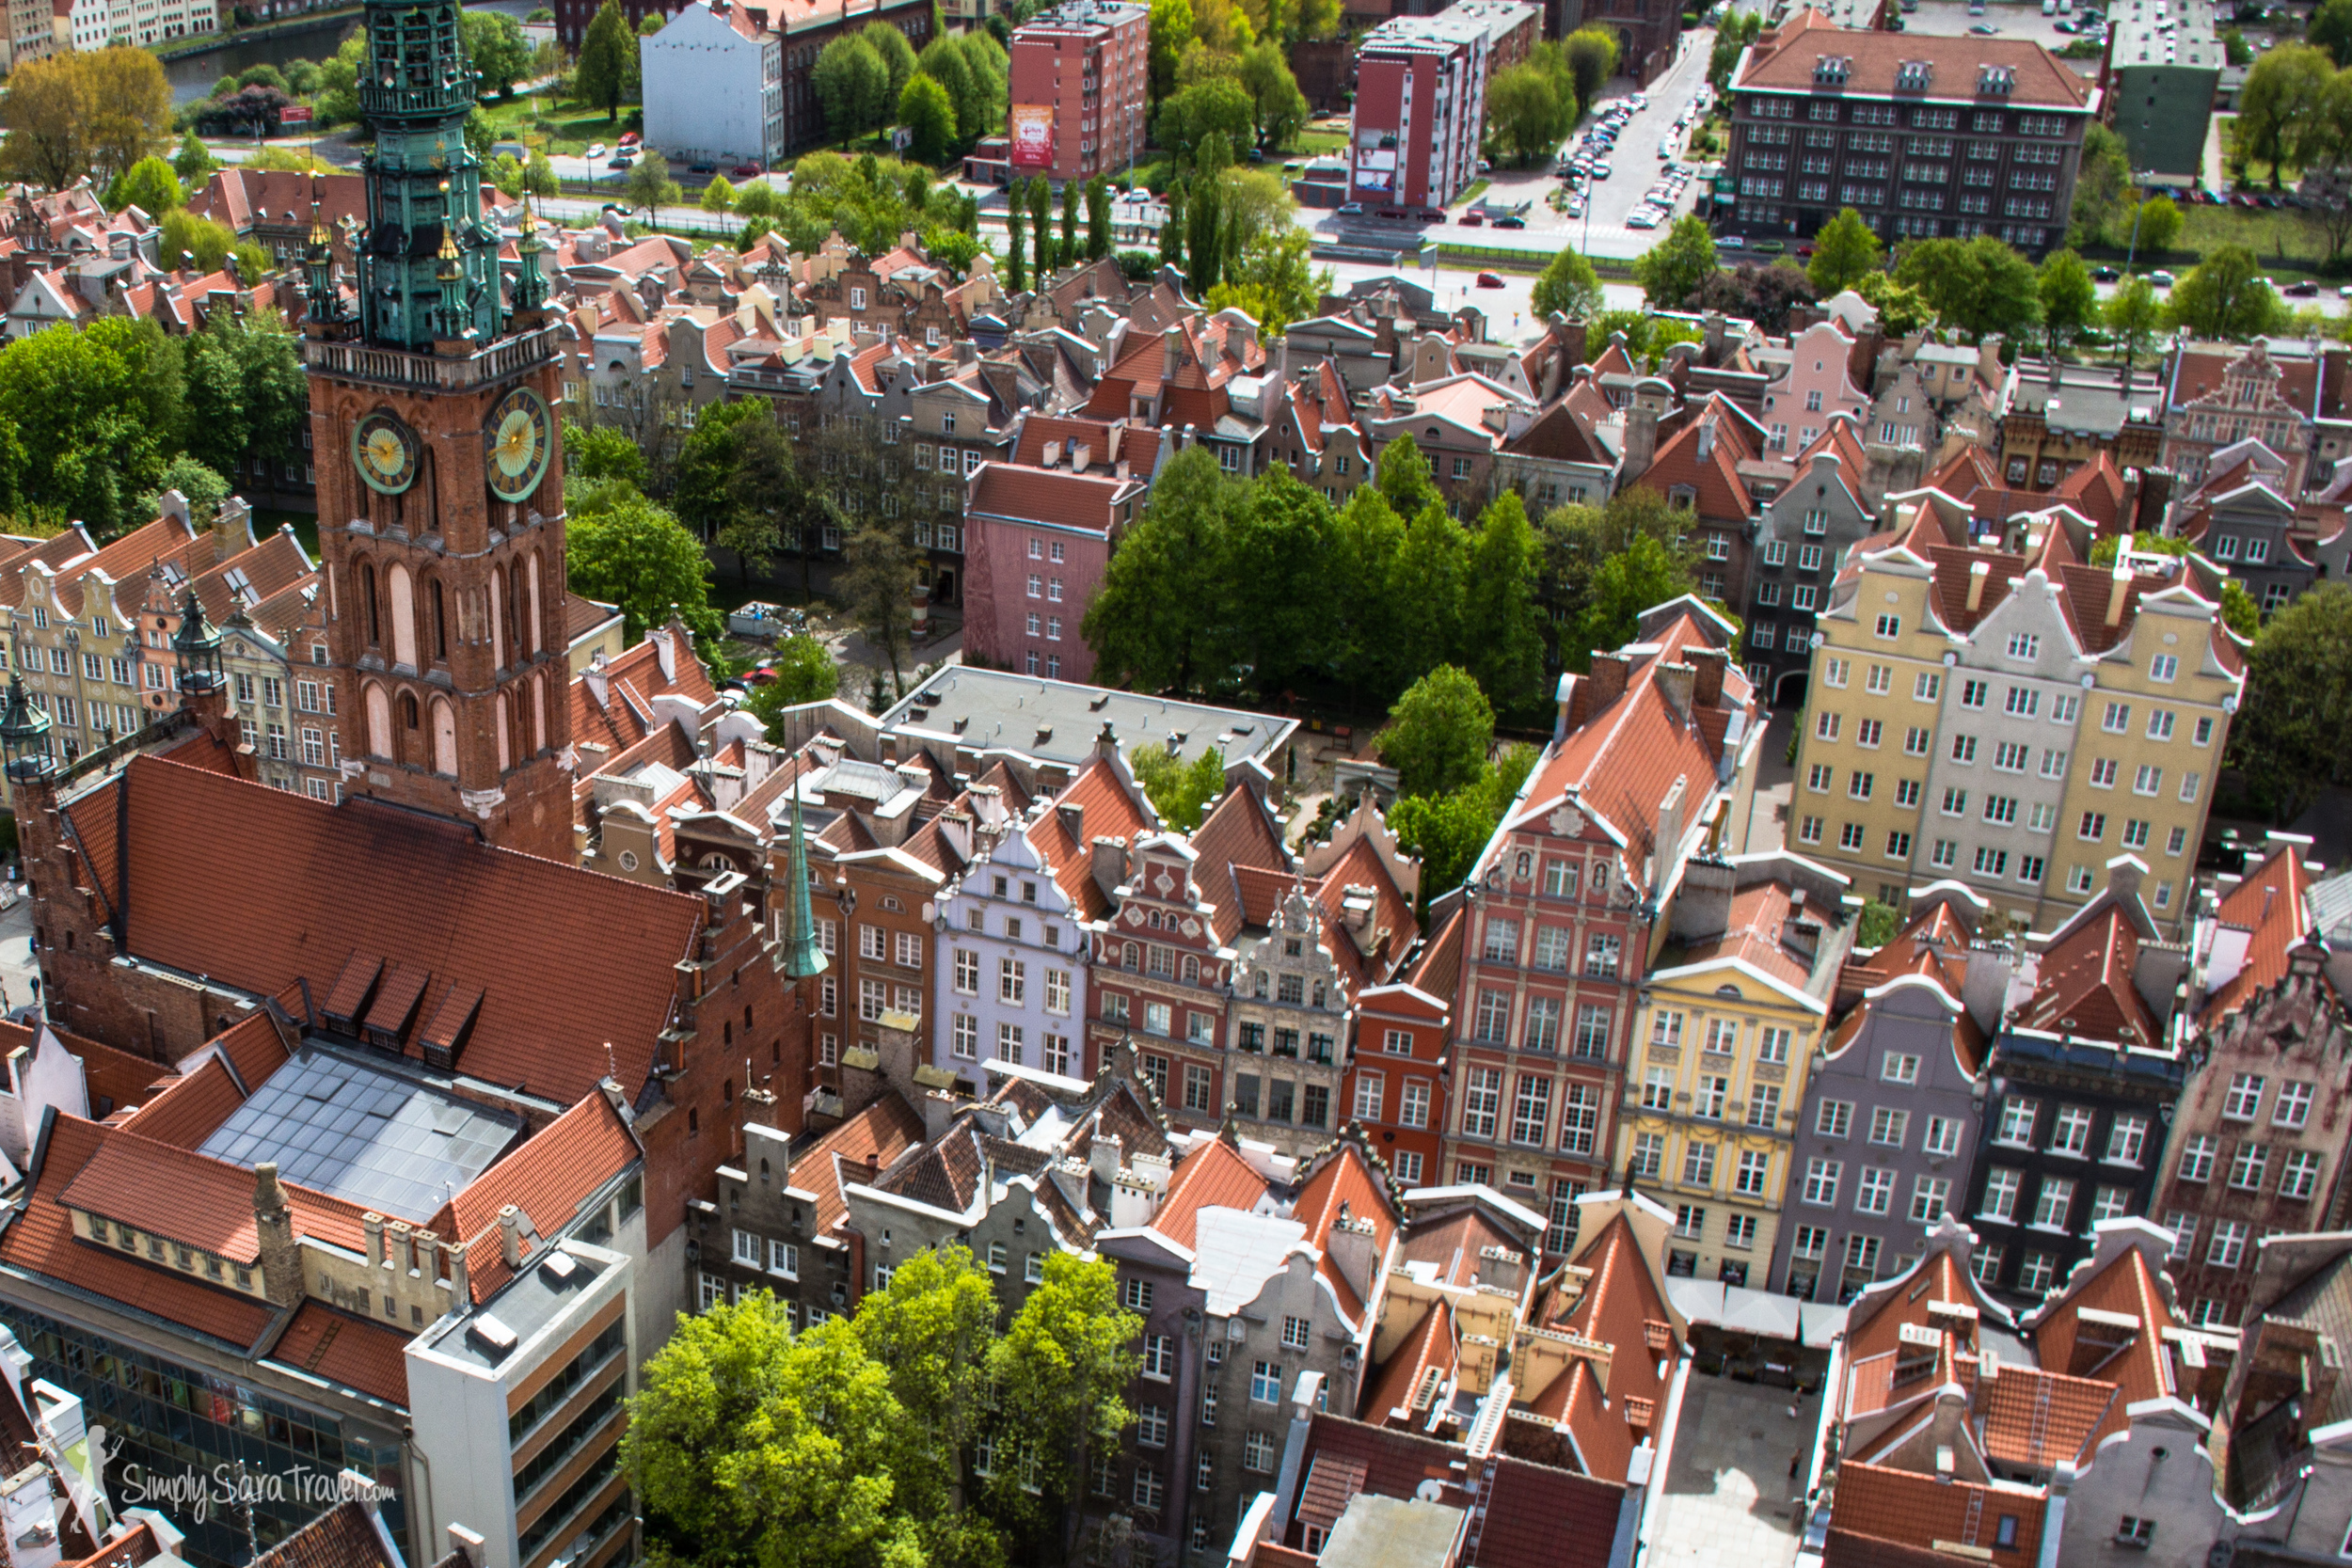 The tower of St. Mary's Church offers some pretty views of Gdańsk!